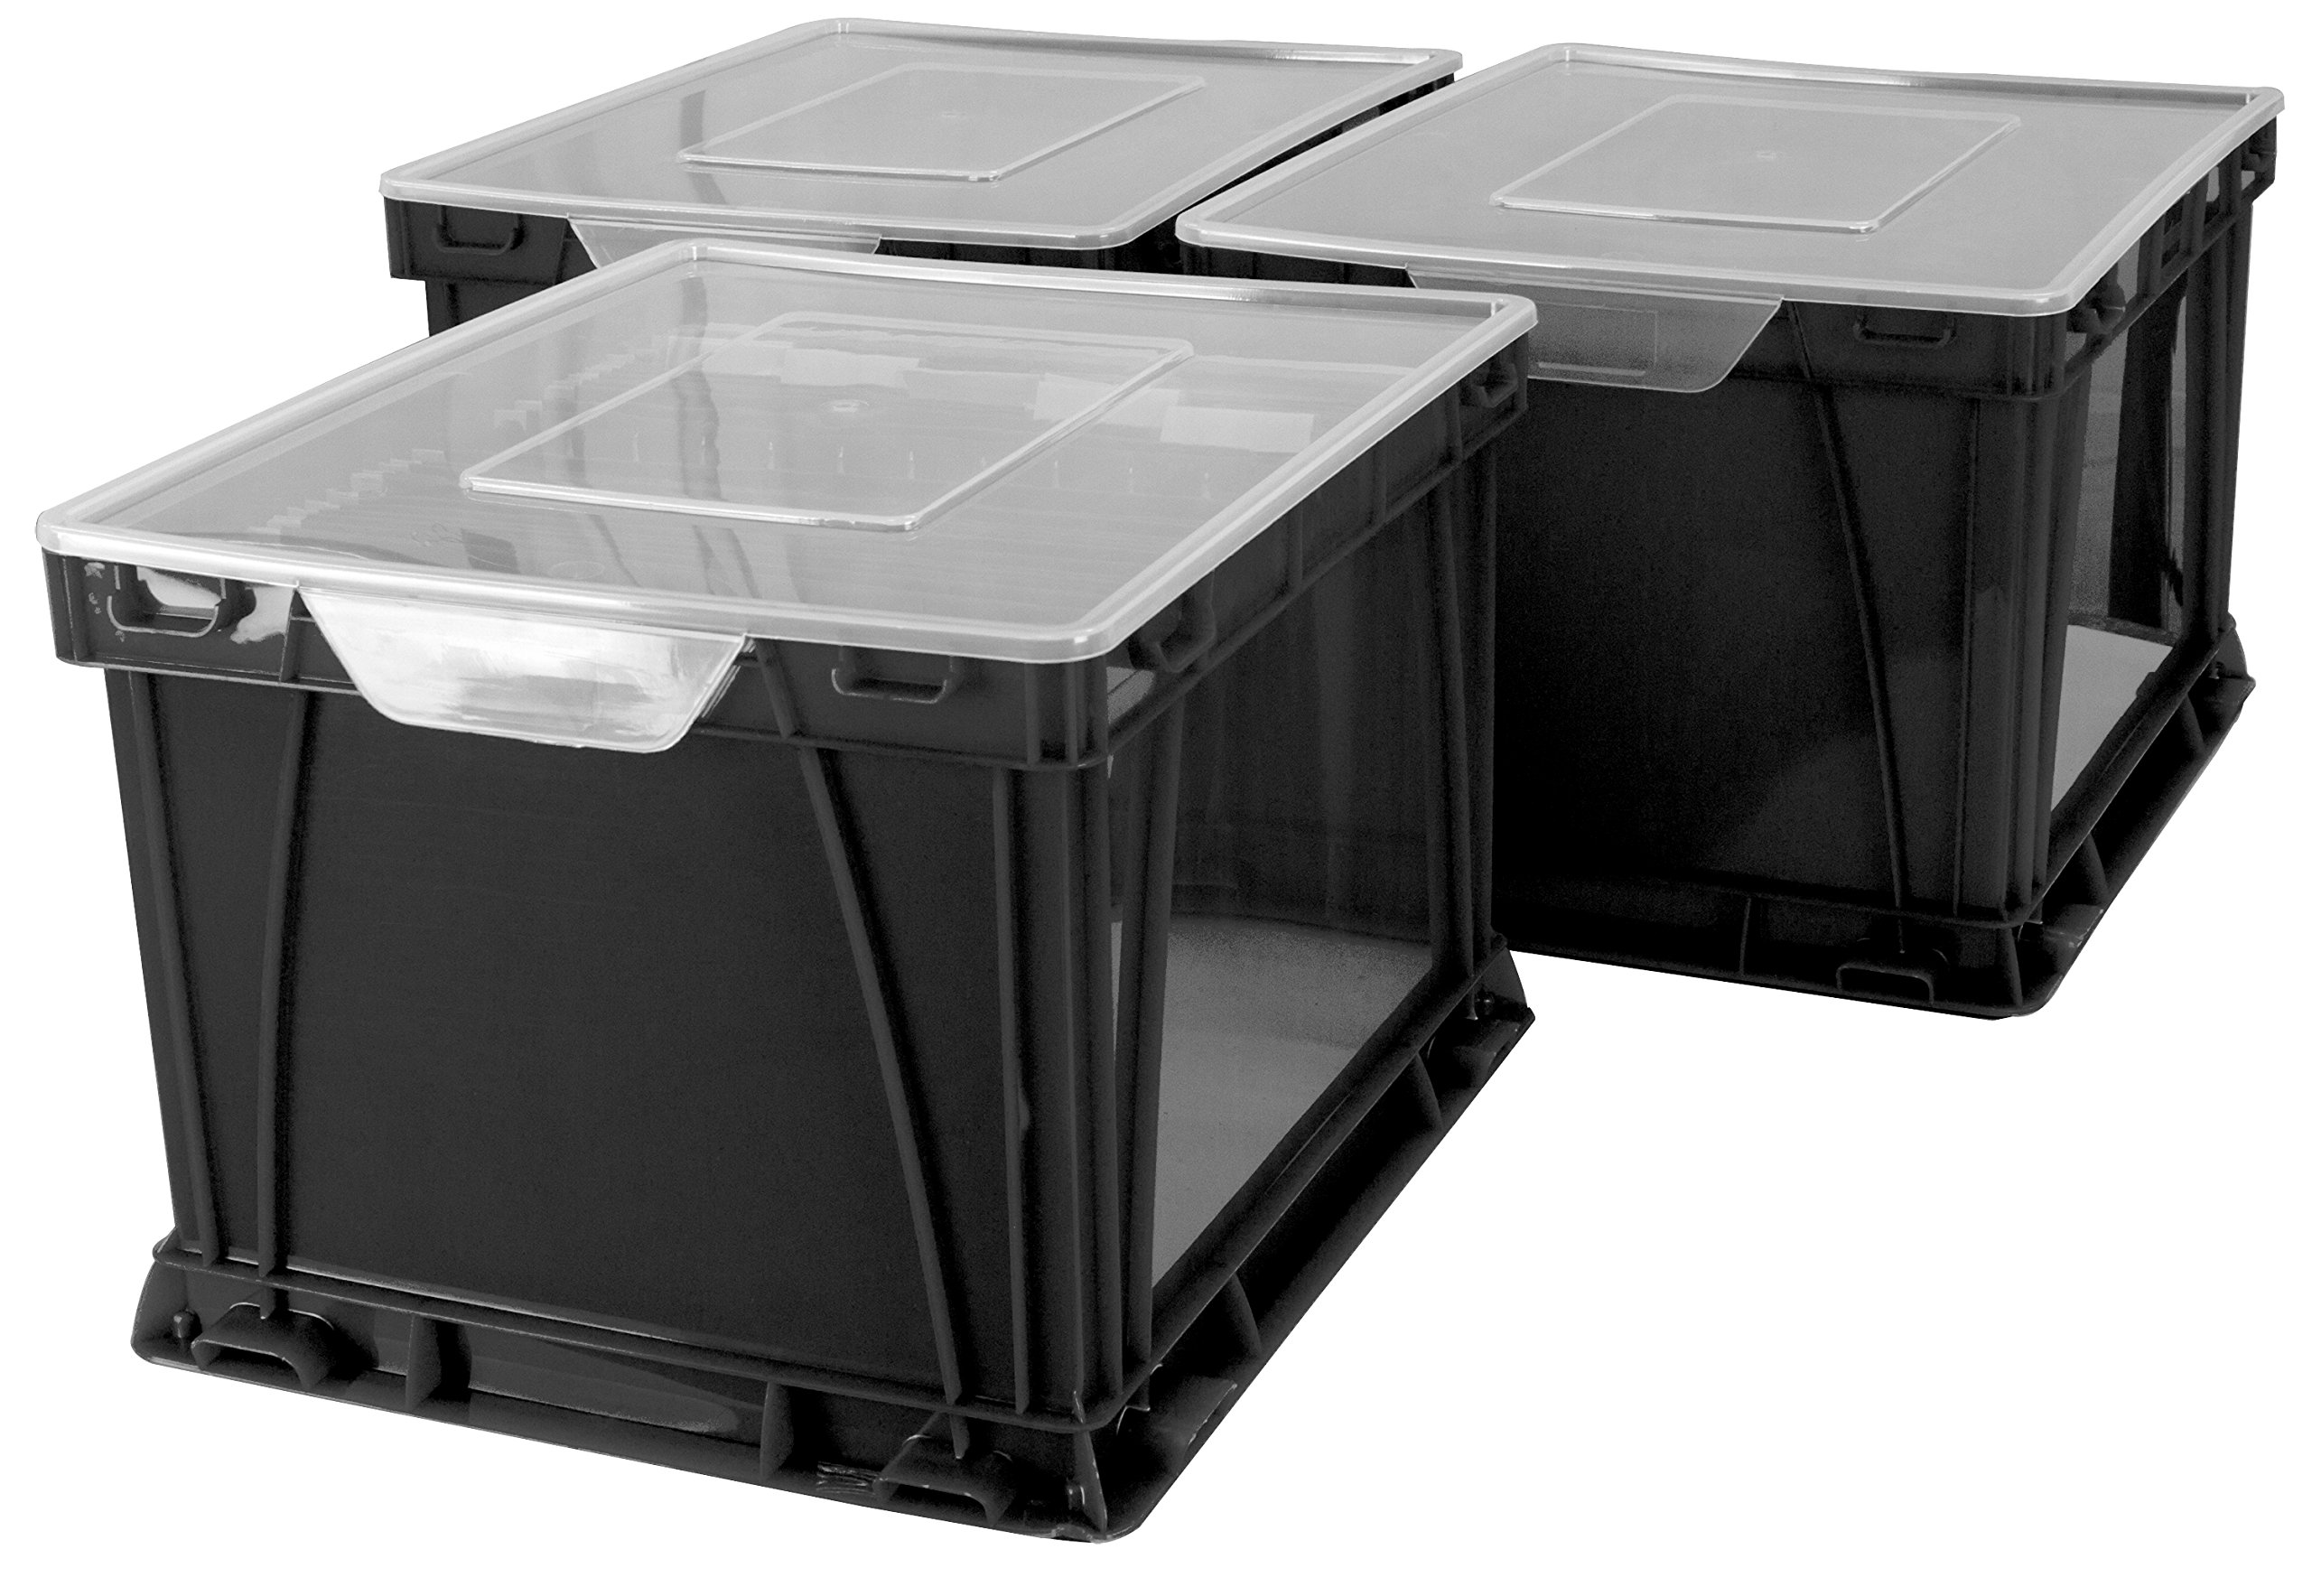 Storex Storage and Filing Cube, 17.25 x 14.25 x 10.5 Inches, Black/Clear, Case of 3 (STX62005U03C)